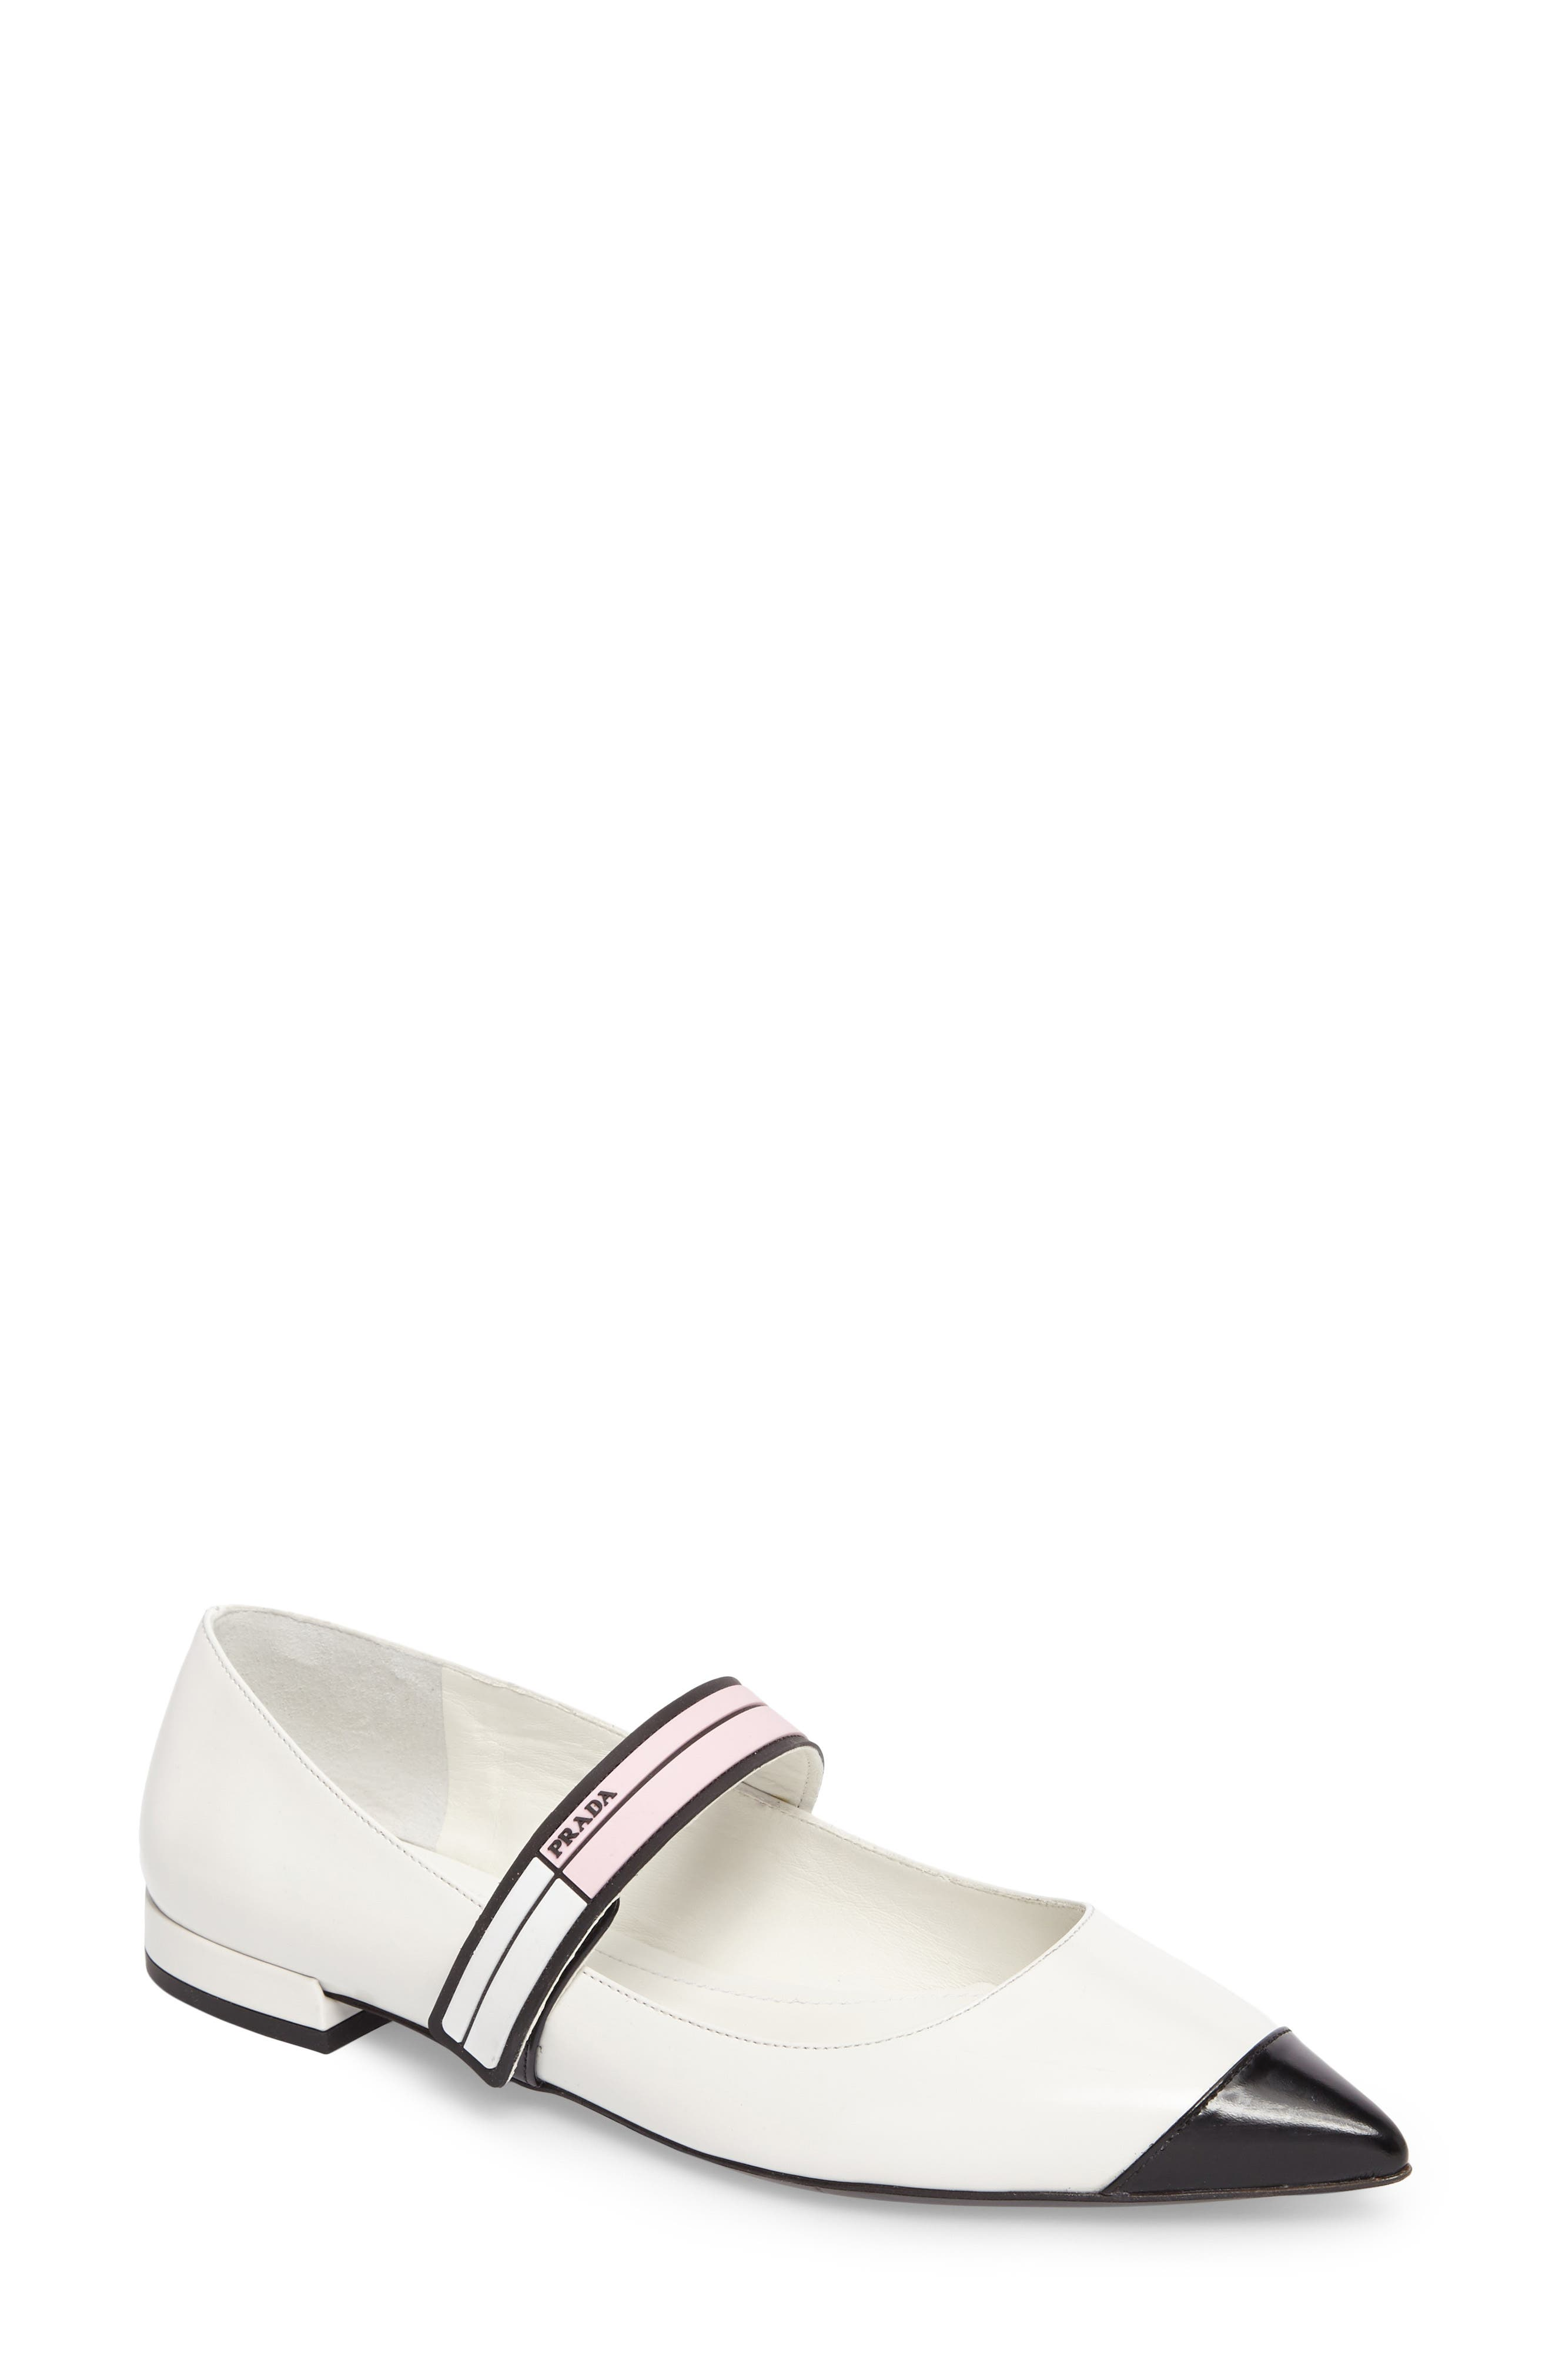 Alternate Image 1 Selected - Prada Logo Strap Pointy Toe Flat (Women)